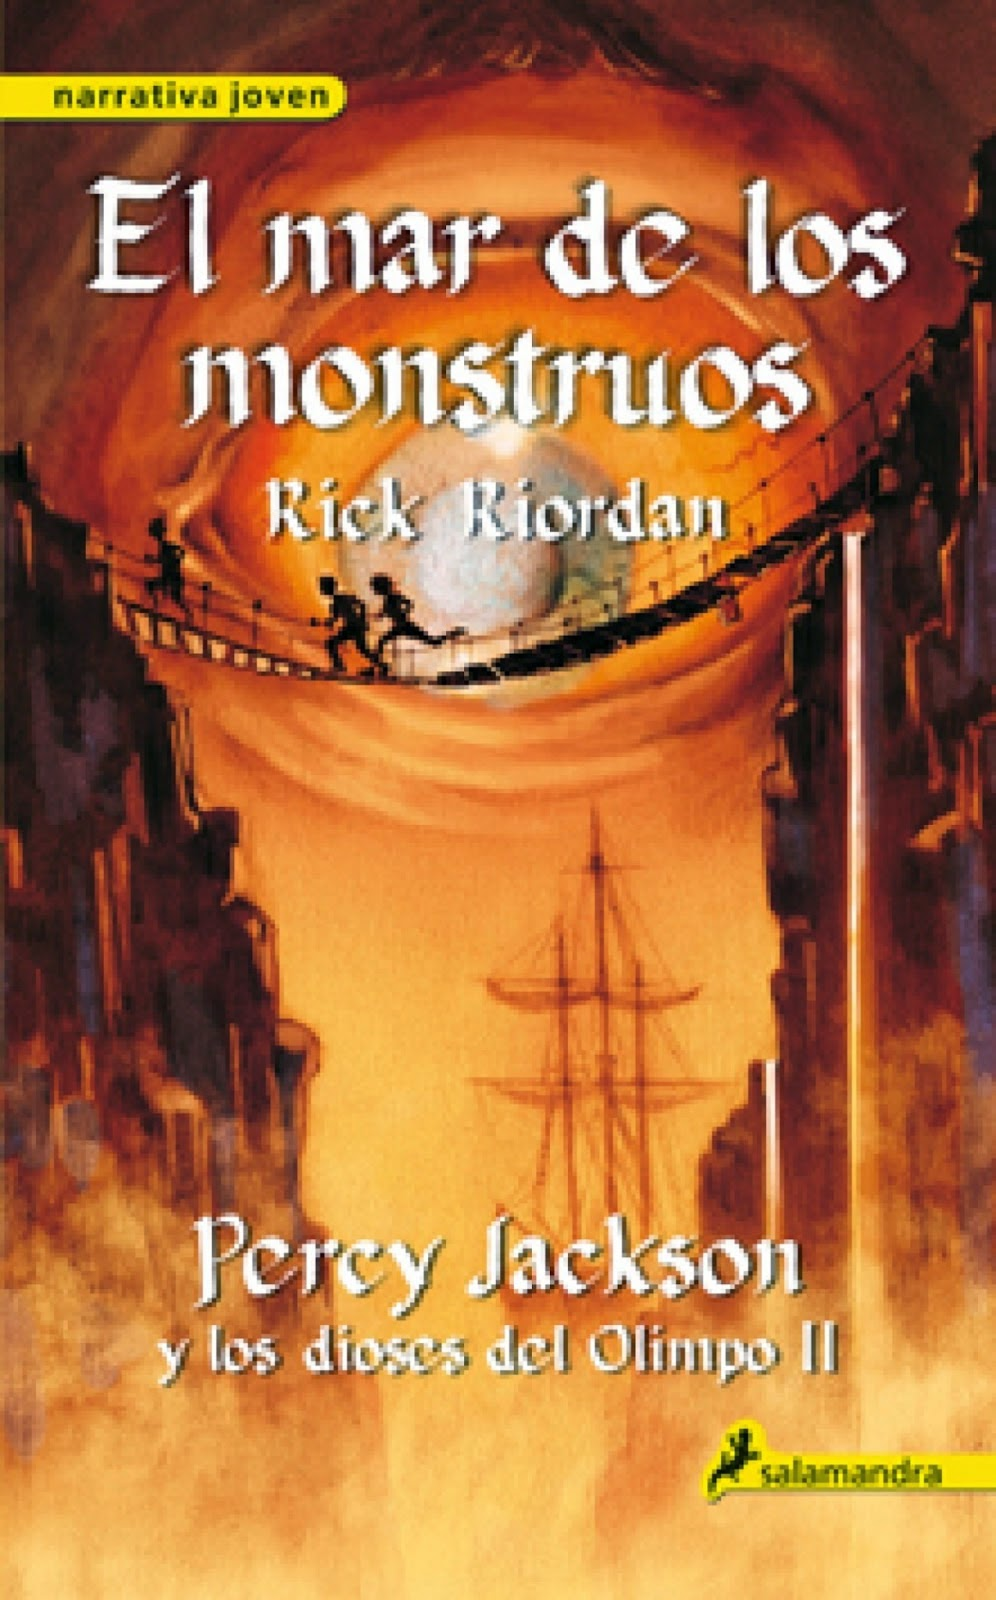 Percy Jackson y el mar de monstruos